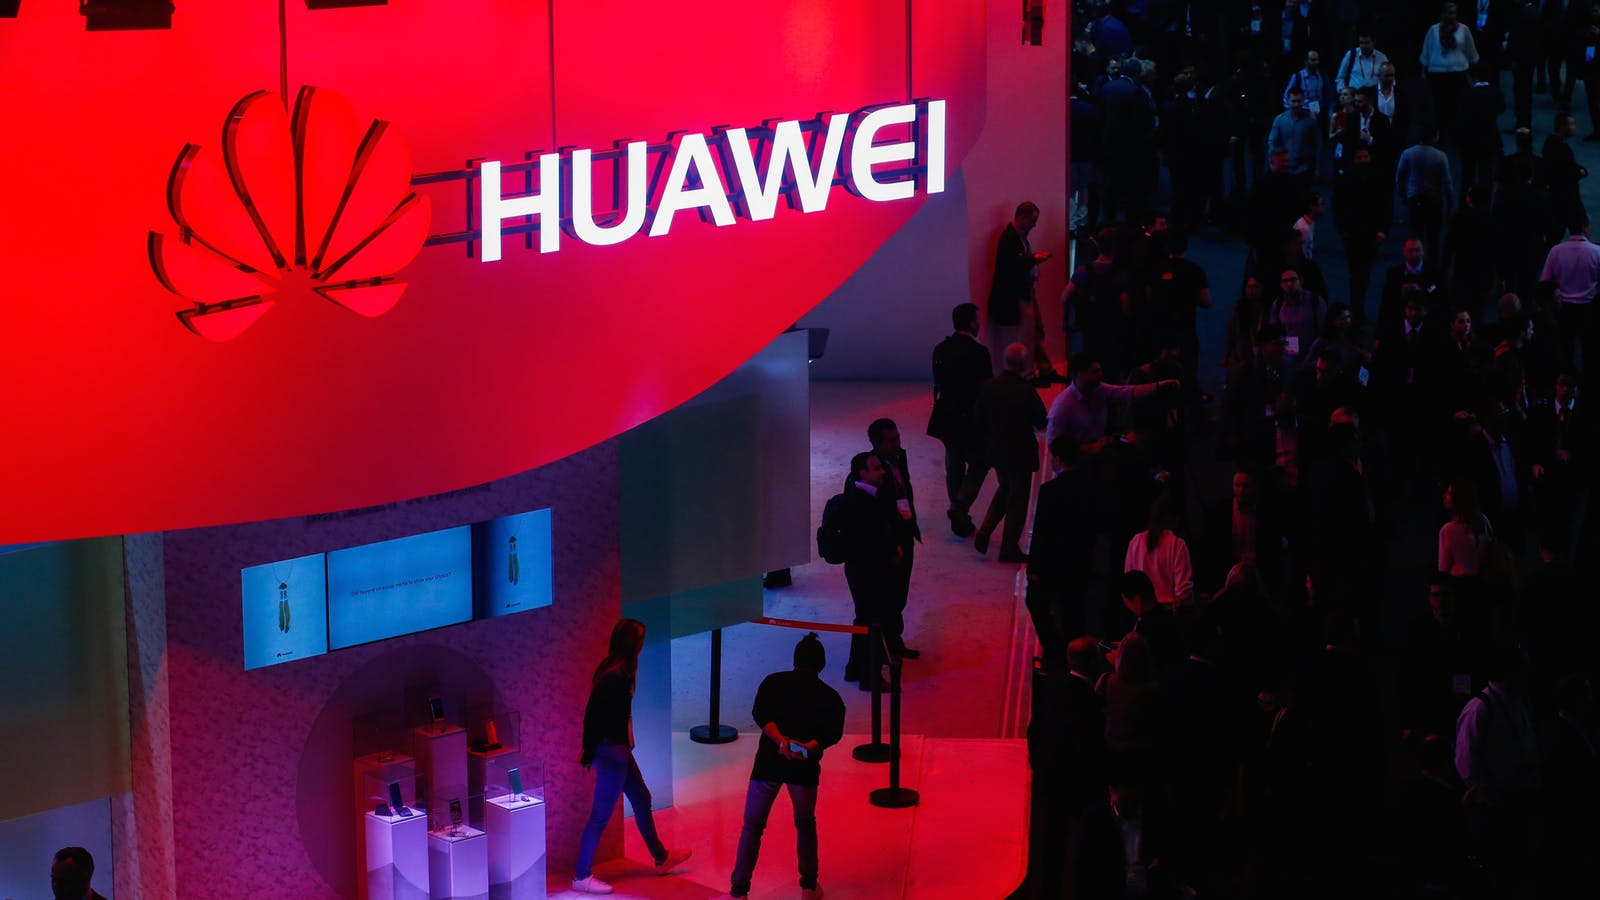 Huawei's booth at the Mobile World Congress last month in Barcelona. Photo by Bloomberg.